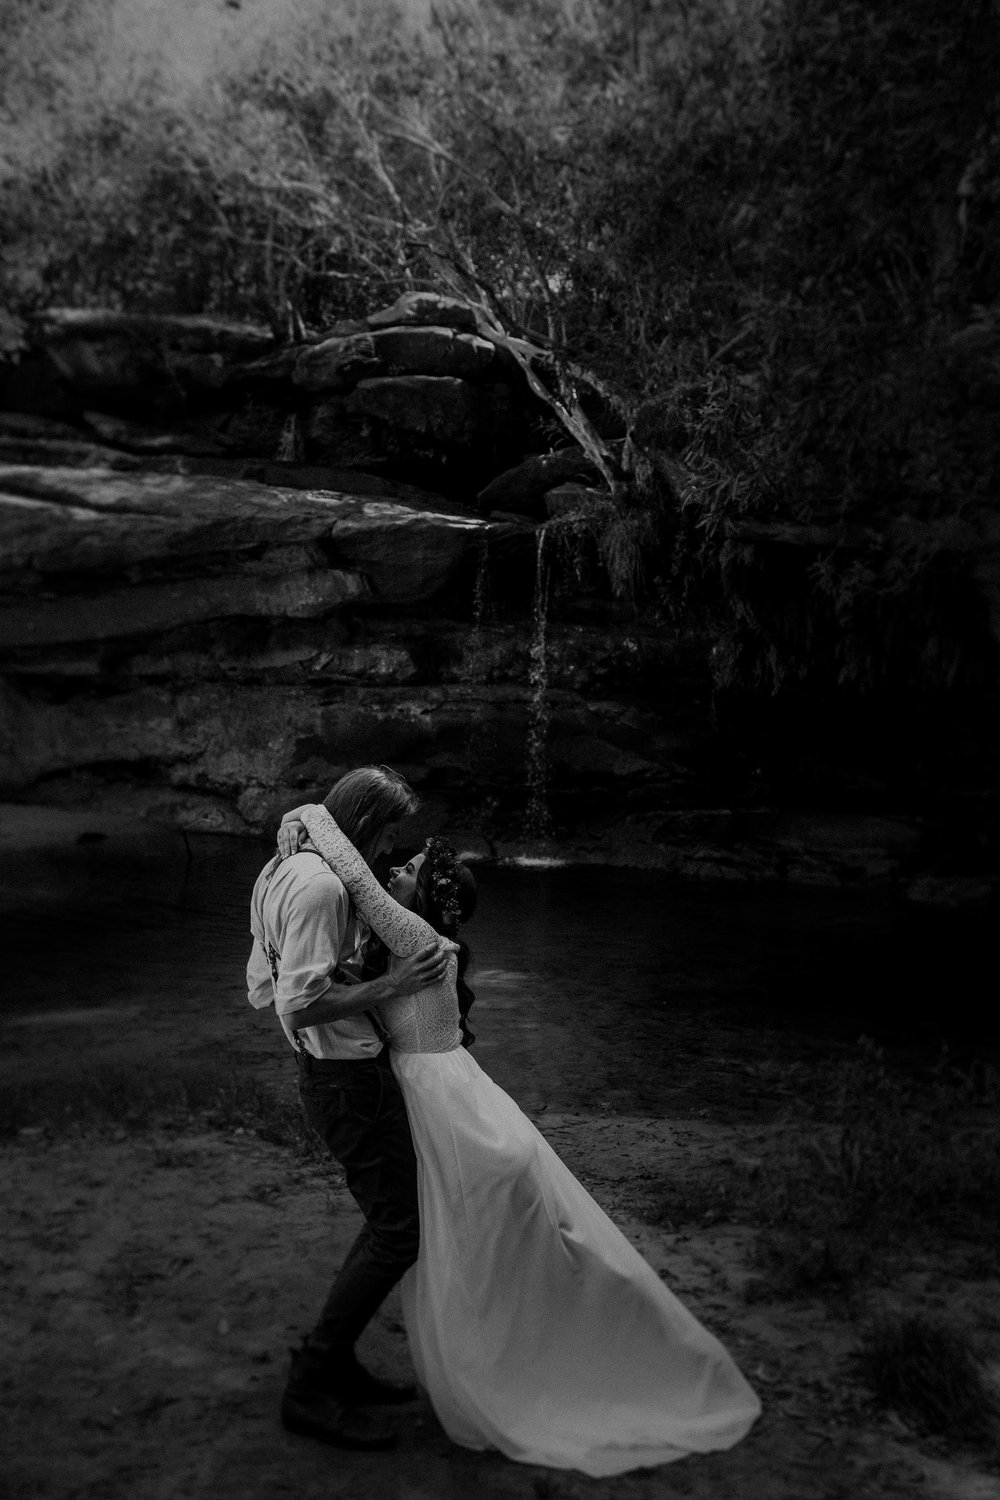 beth & caleb - kings & thieves elopement wedding photography -- submission 135.jpg